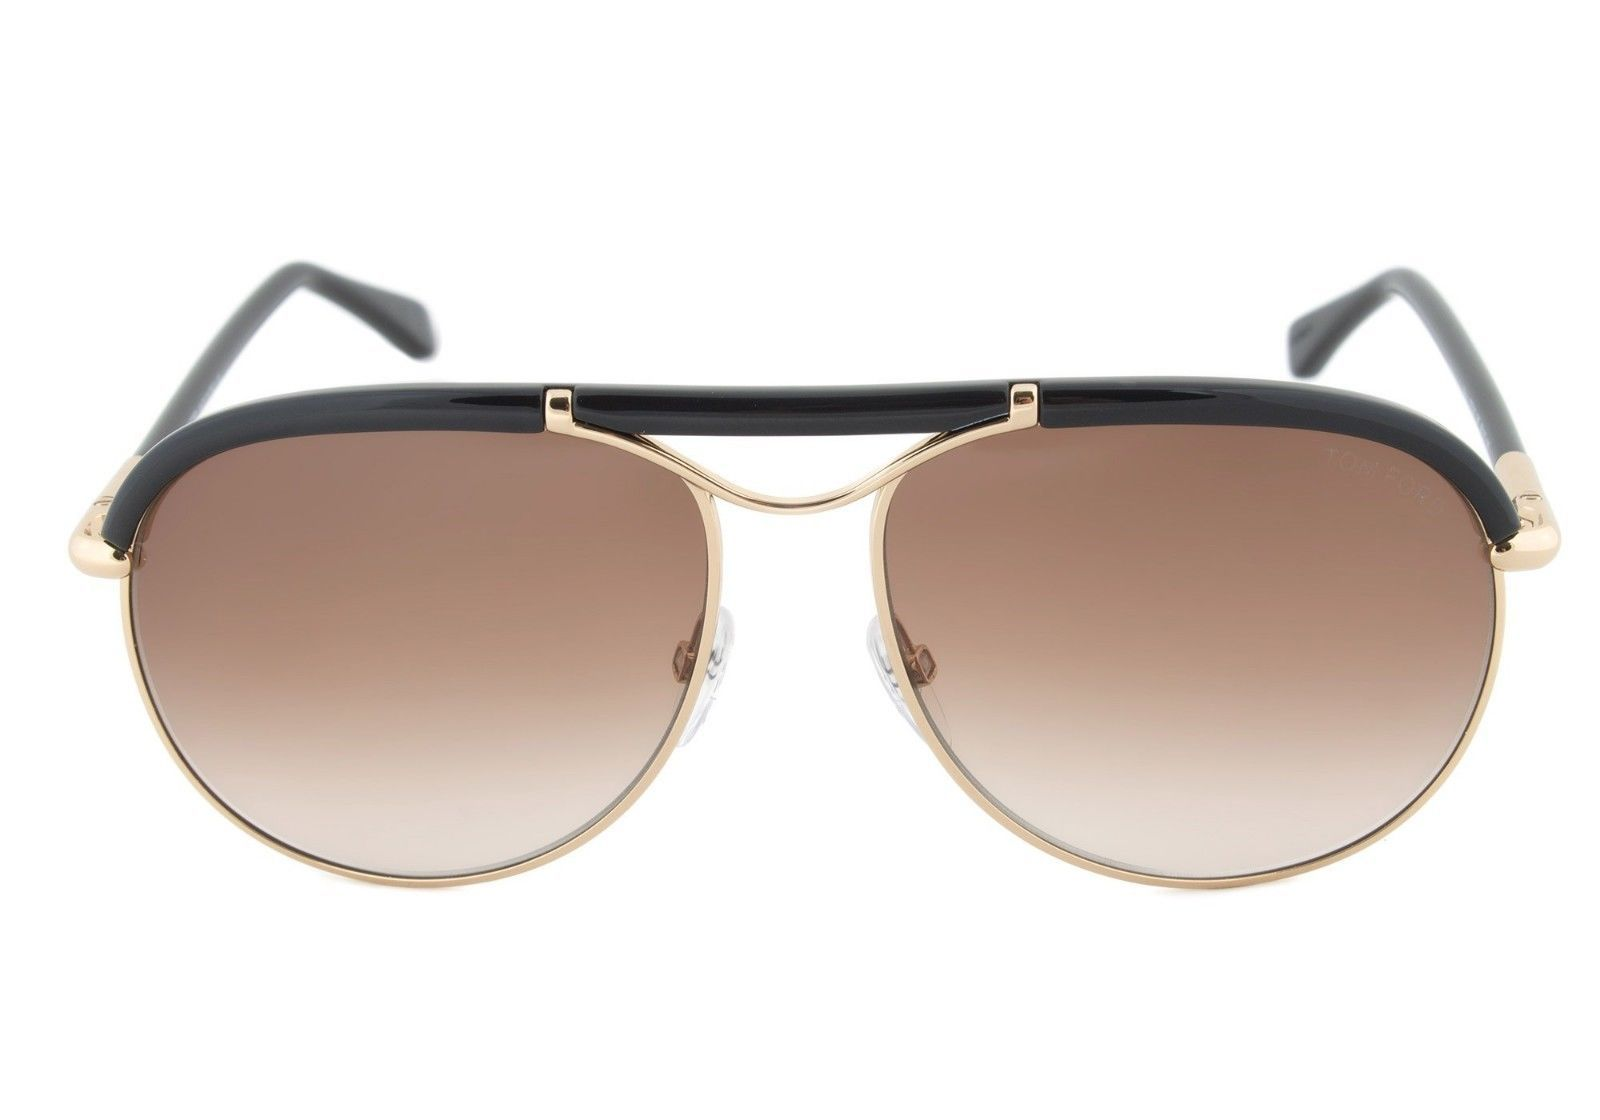 4d1e1e032662 New Tom Ford FT 235 28F Marco Aviator and 50 similar items